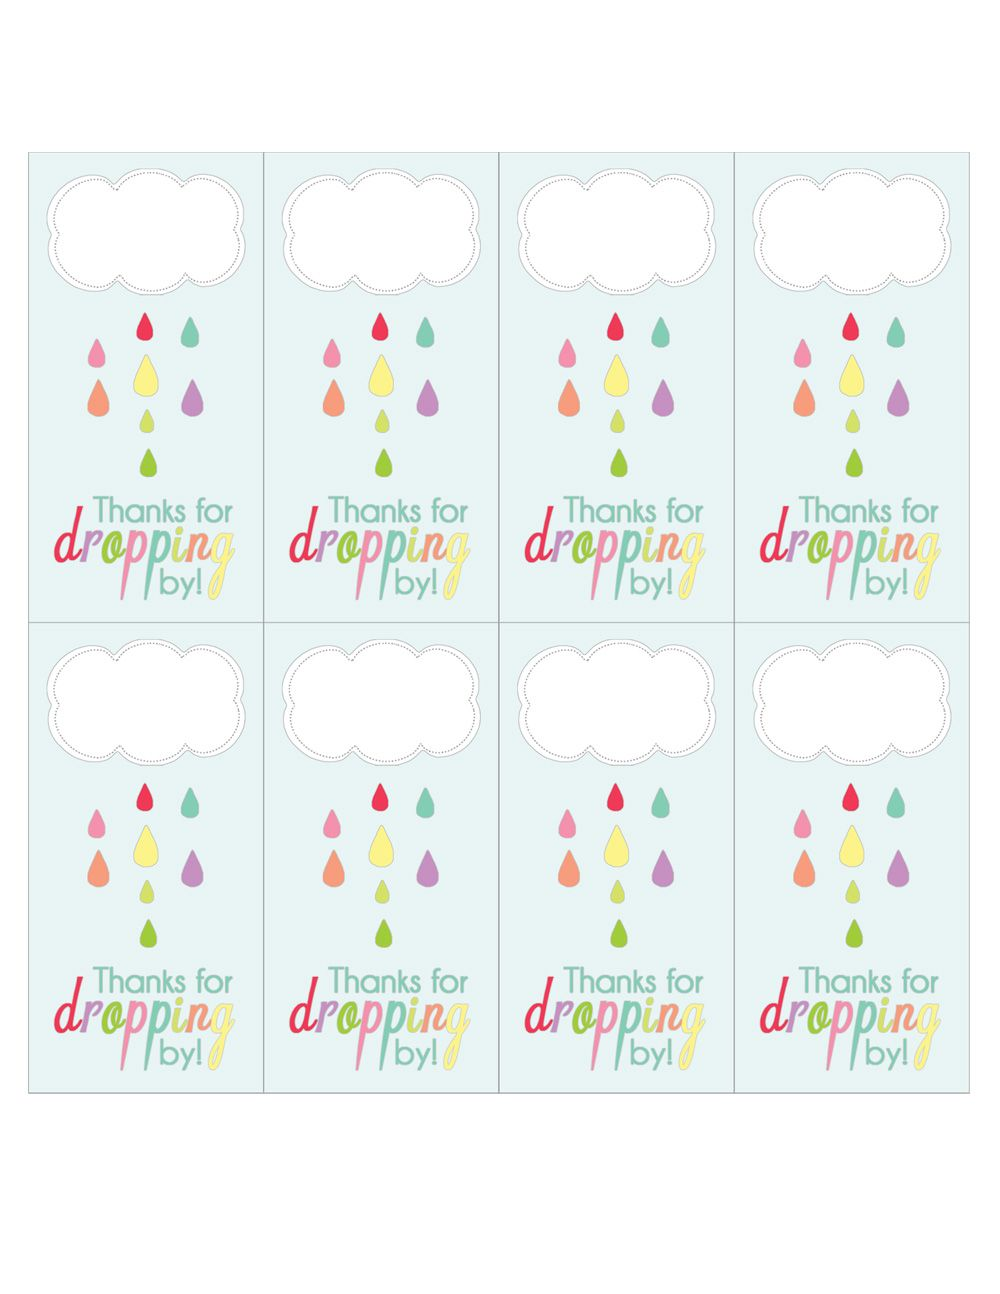 Shower of love free april showers party printables free in continuation of our april showers baby shower since it is my birthday month i decided to share all the party printables from this event as my gift to negle Image collections